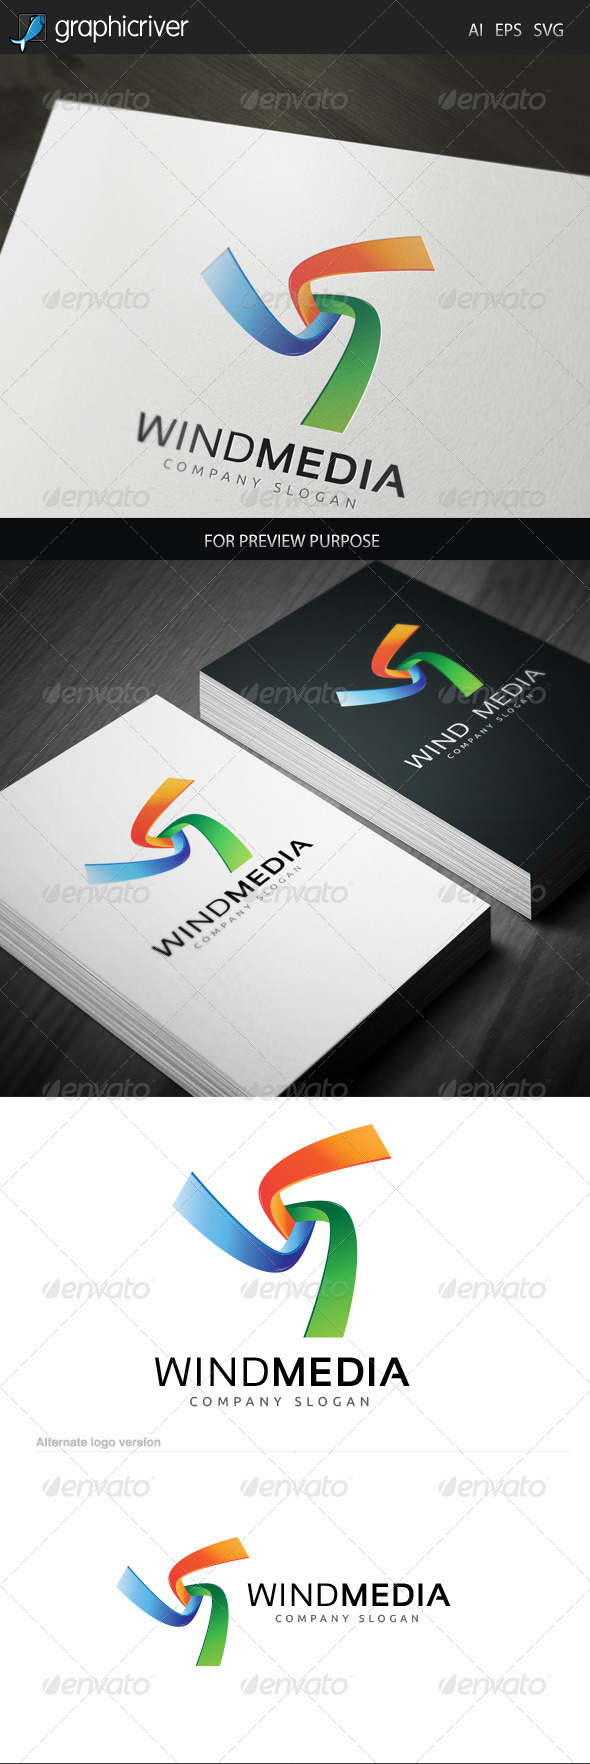 GraphicRiver Wind Media 1 Logo 6048321